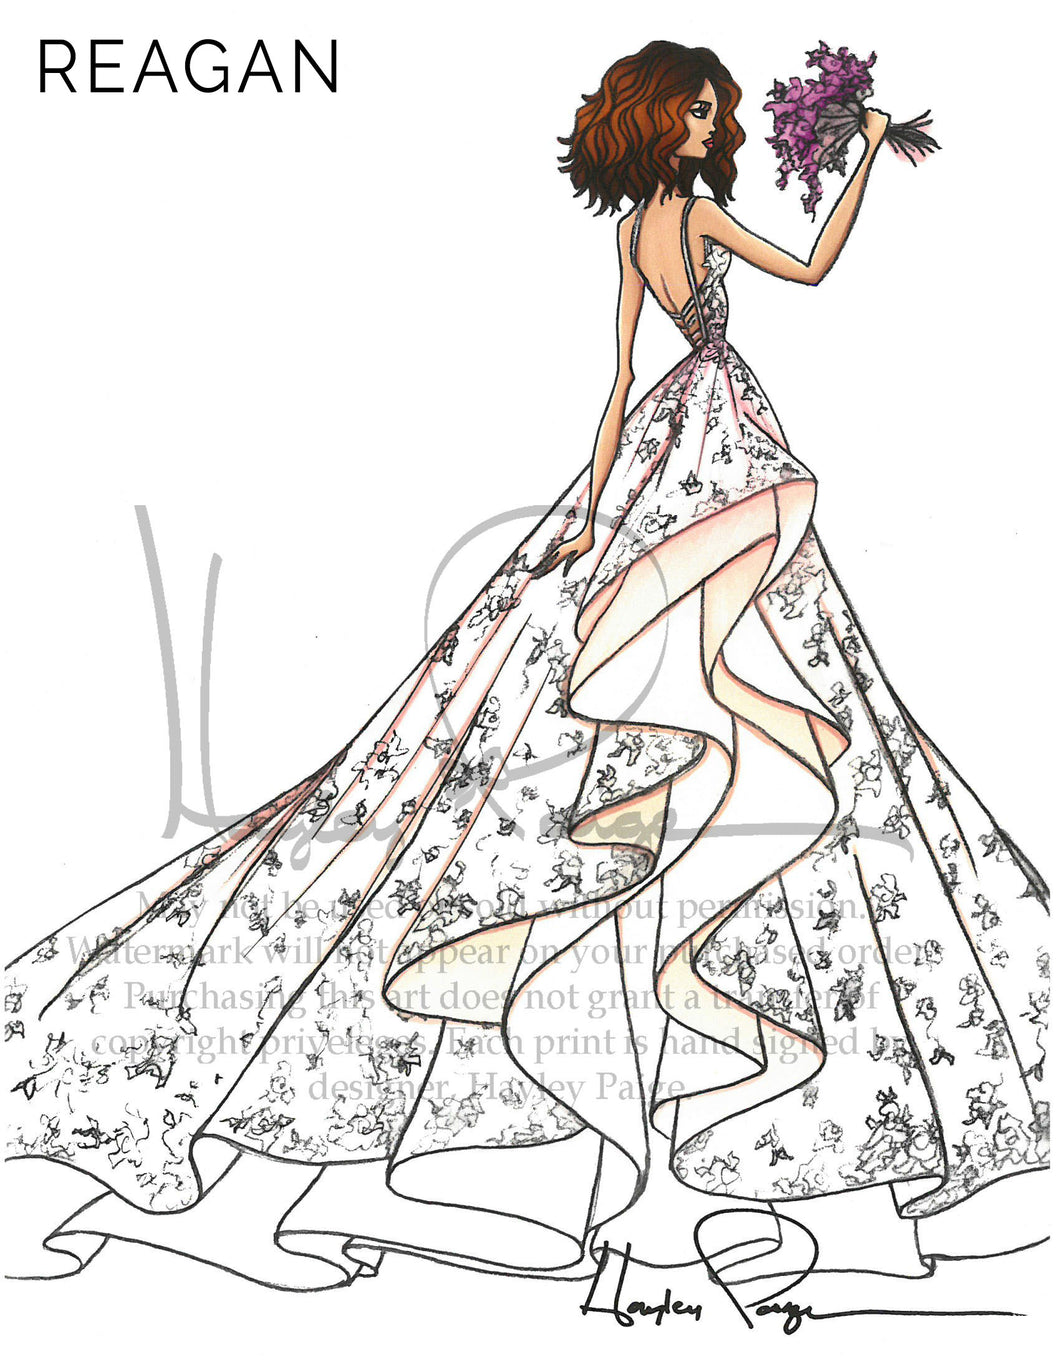 Reagan- Hayley Paige Bridal Gown Printed Illustration